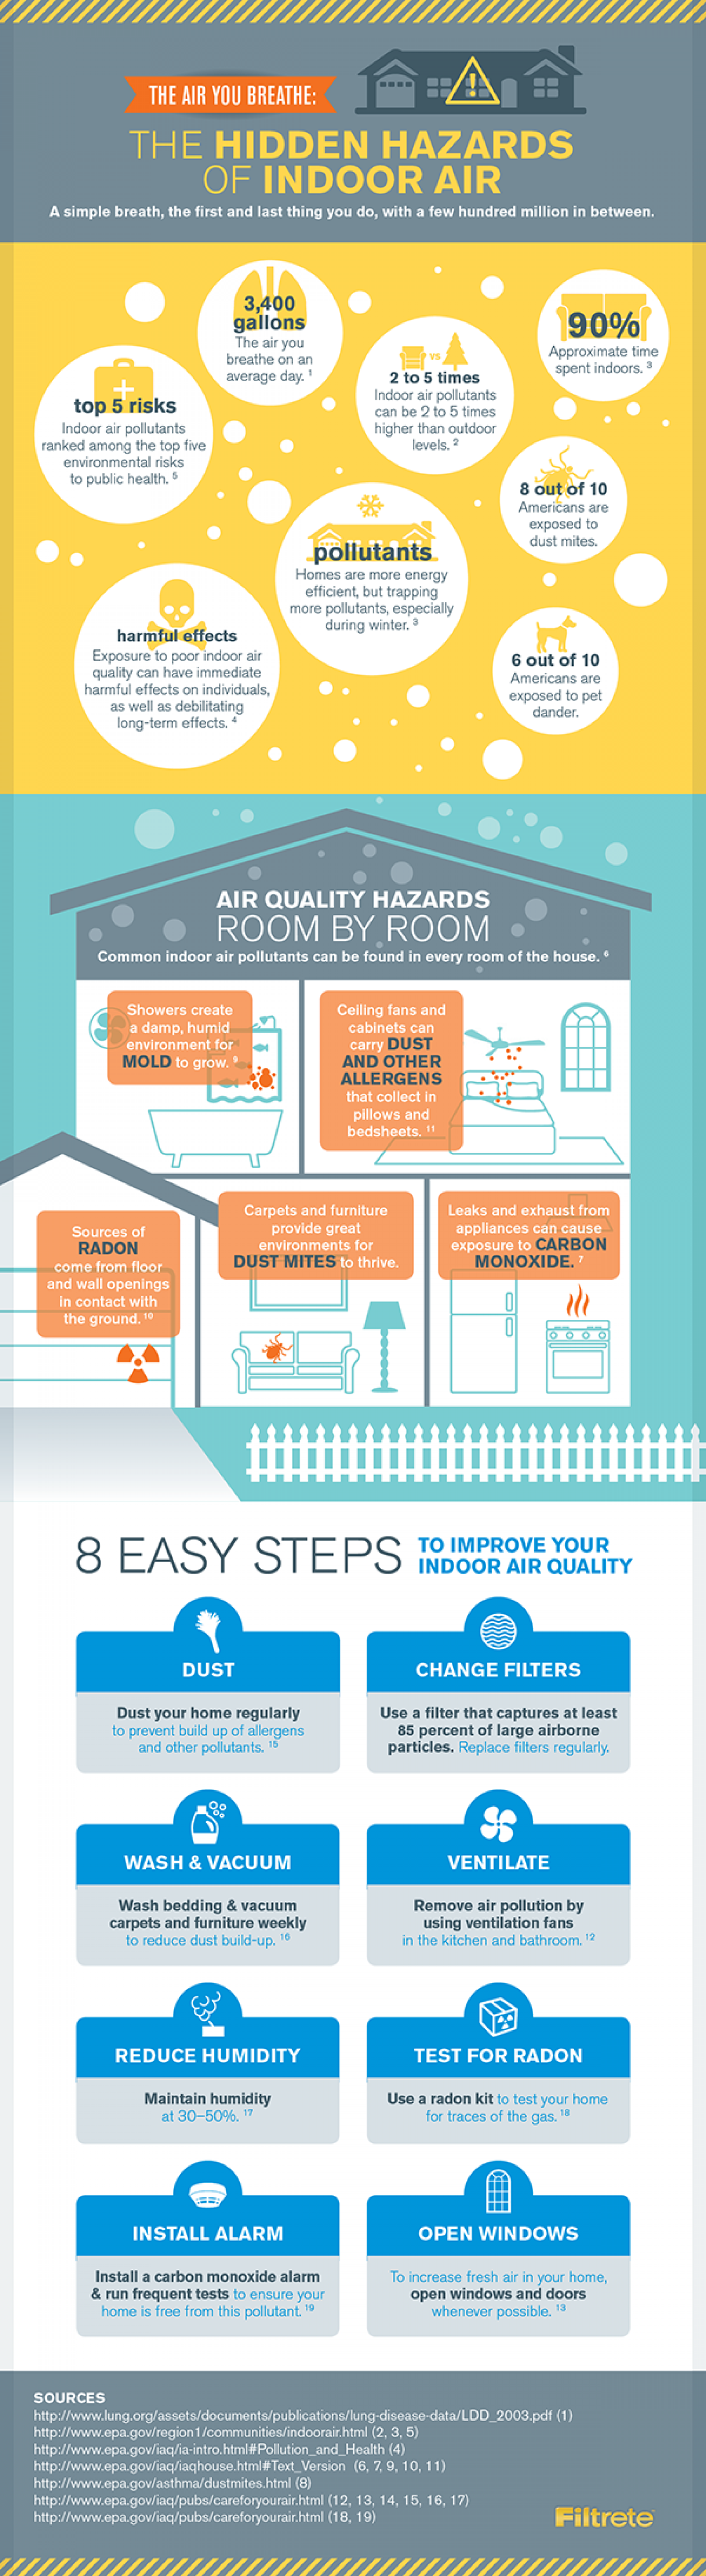 The Hidden Hazards of Indoor Air Infographic